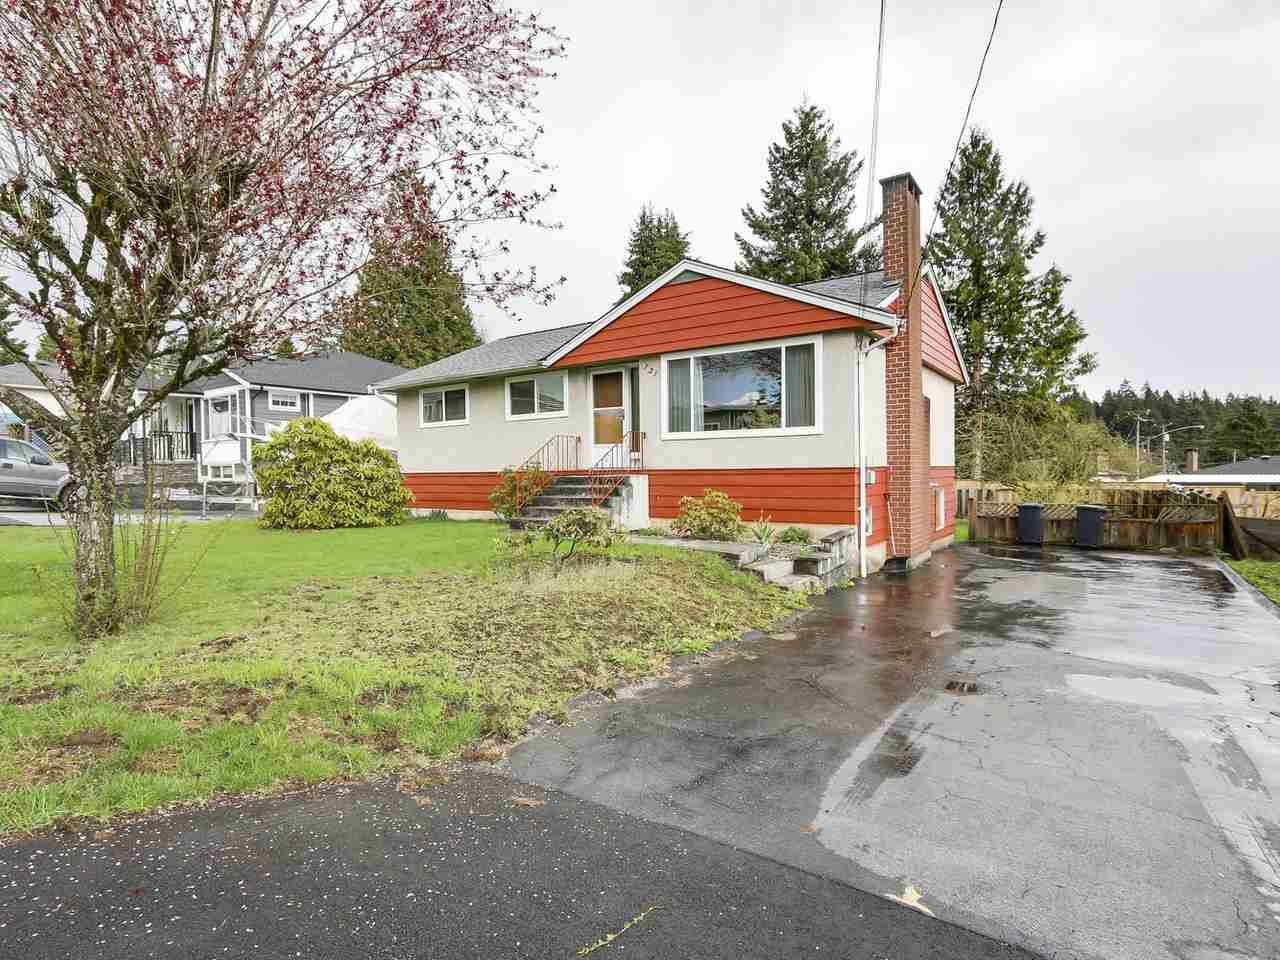 Photo 2: Photos: 731 LINTON Street in Coquitlam: Central Coquitlam House for sale : MLS®# R2157896